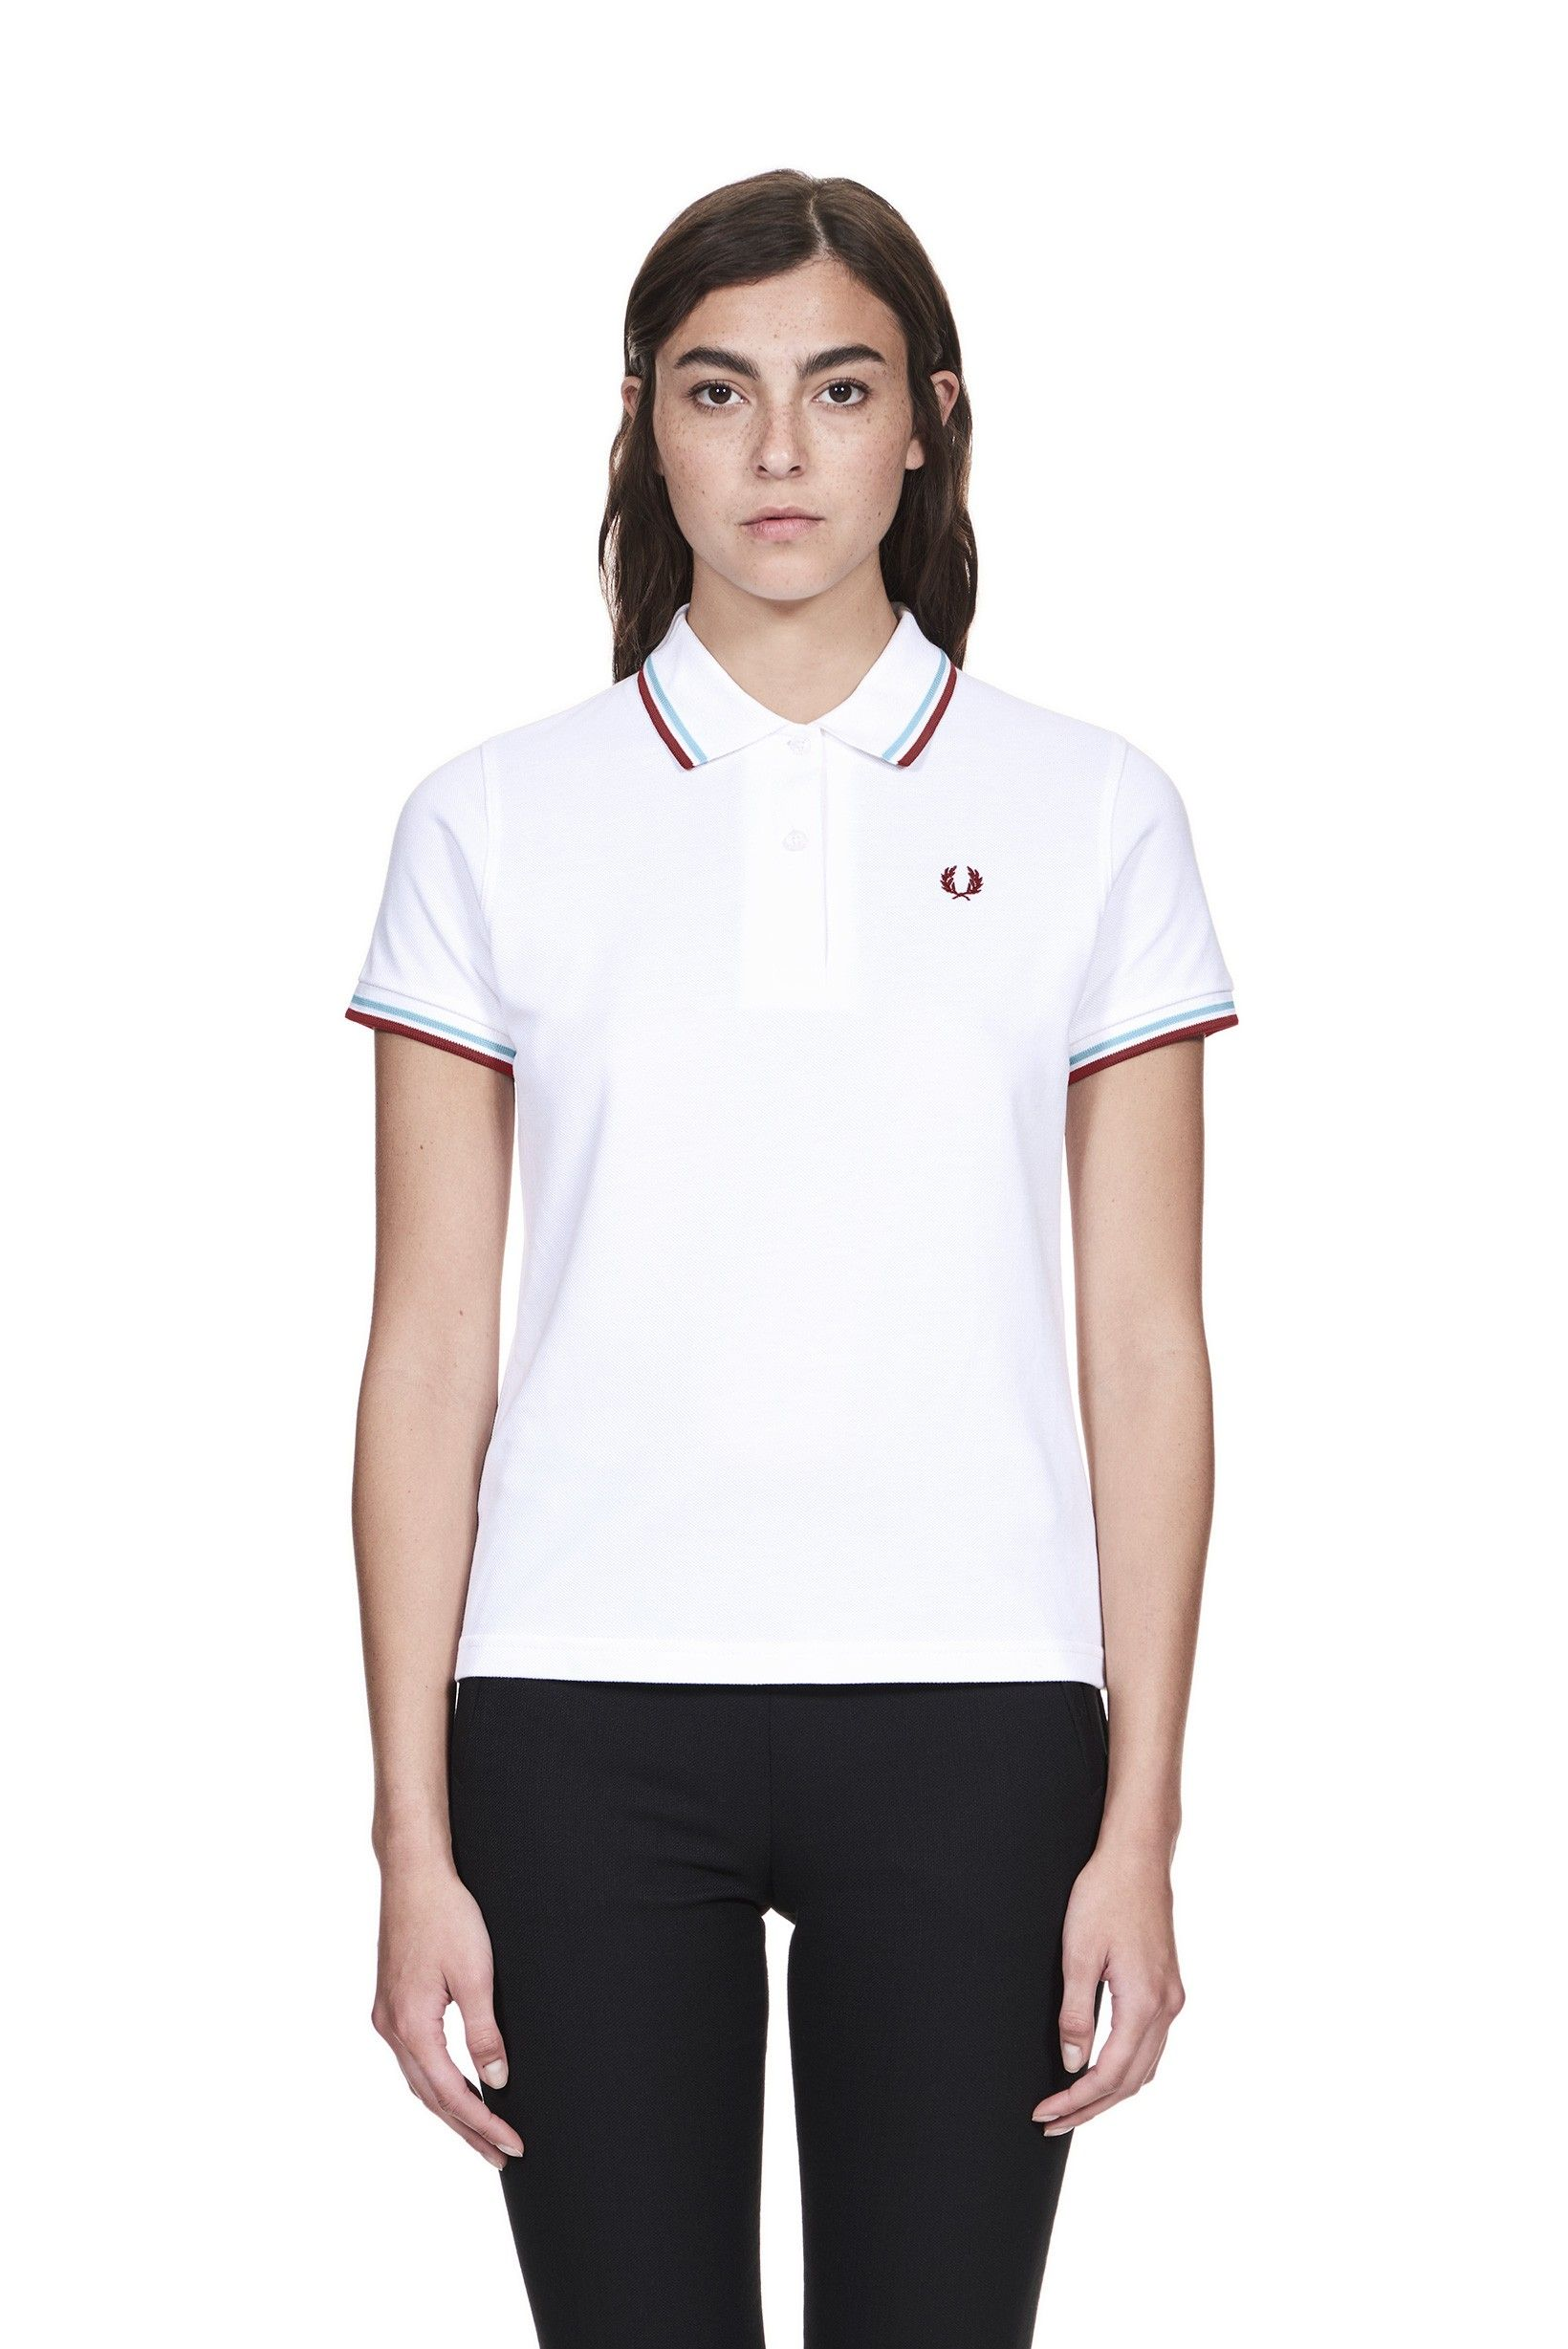 f6444a9d1a6 The original Twin Tipped Fred Perry Shirt. A piece of British subcultural  uniform, made in England for 60 years. Designed with a straight fit, ...